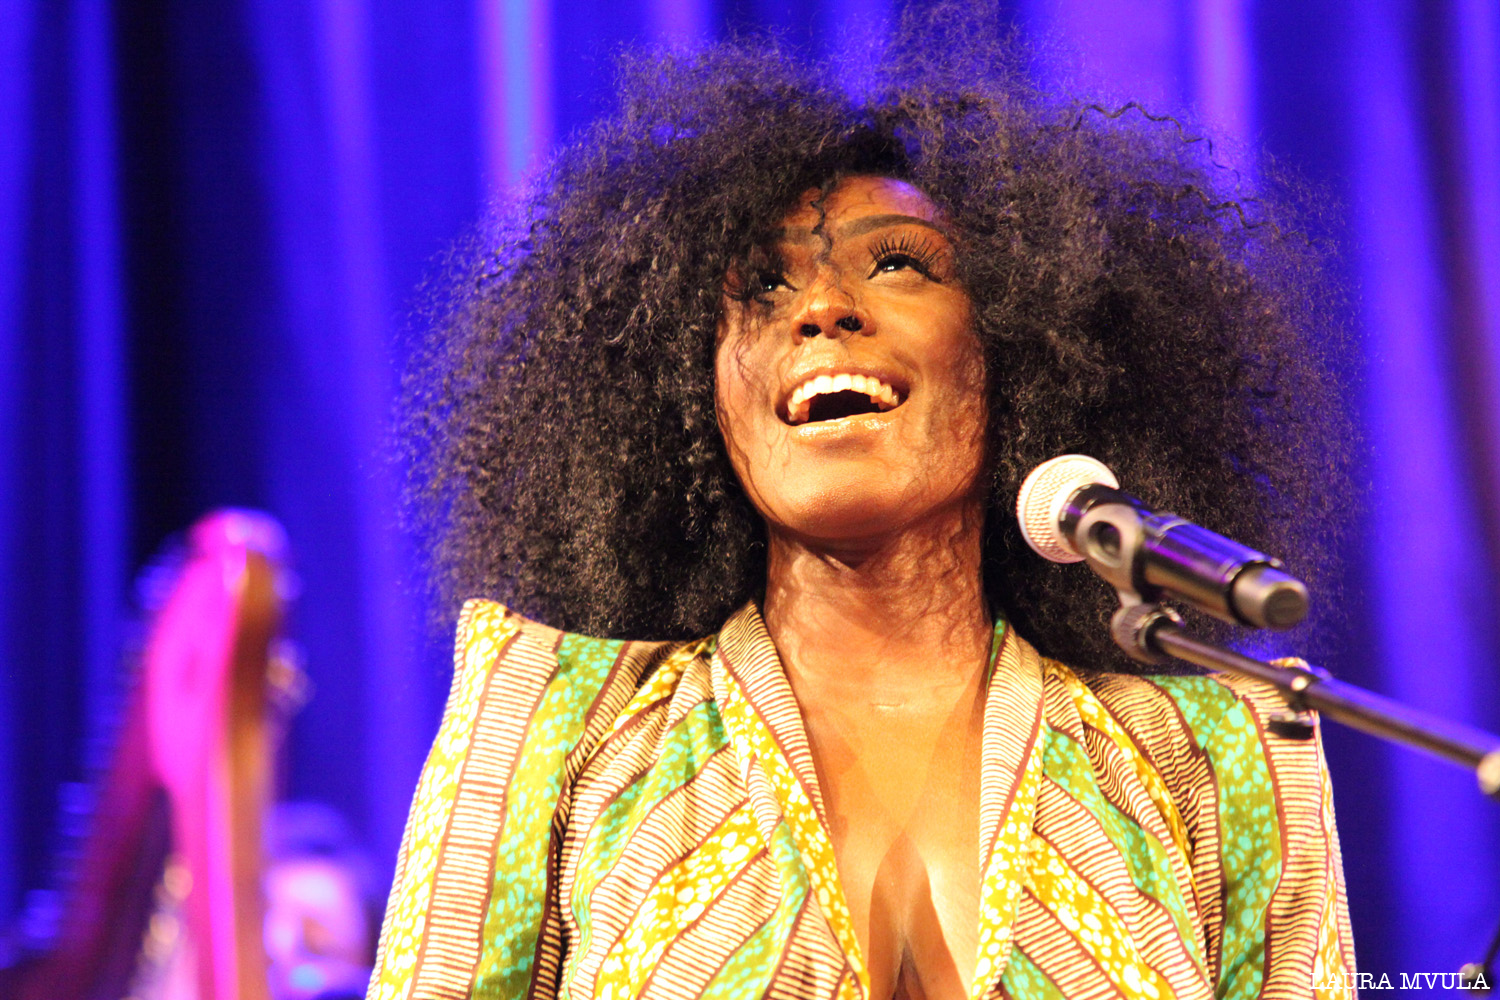 002_030_Laura_Mvula_Hippodrome_Centrepoint_by_Harriet_Armstrong